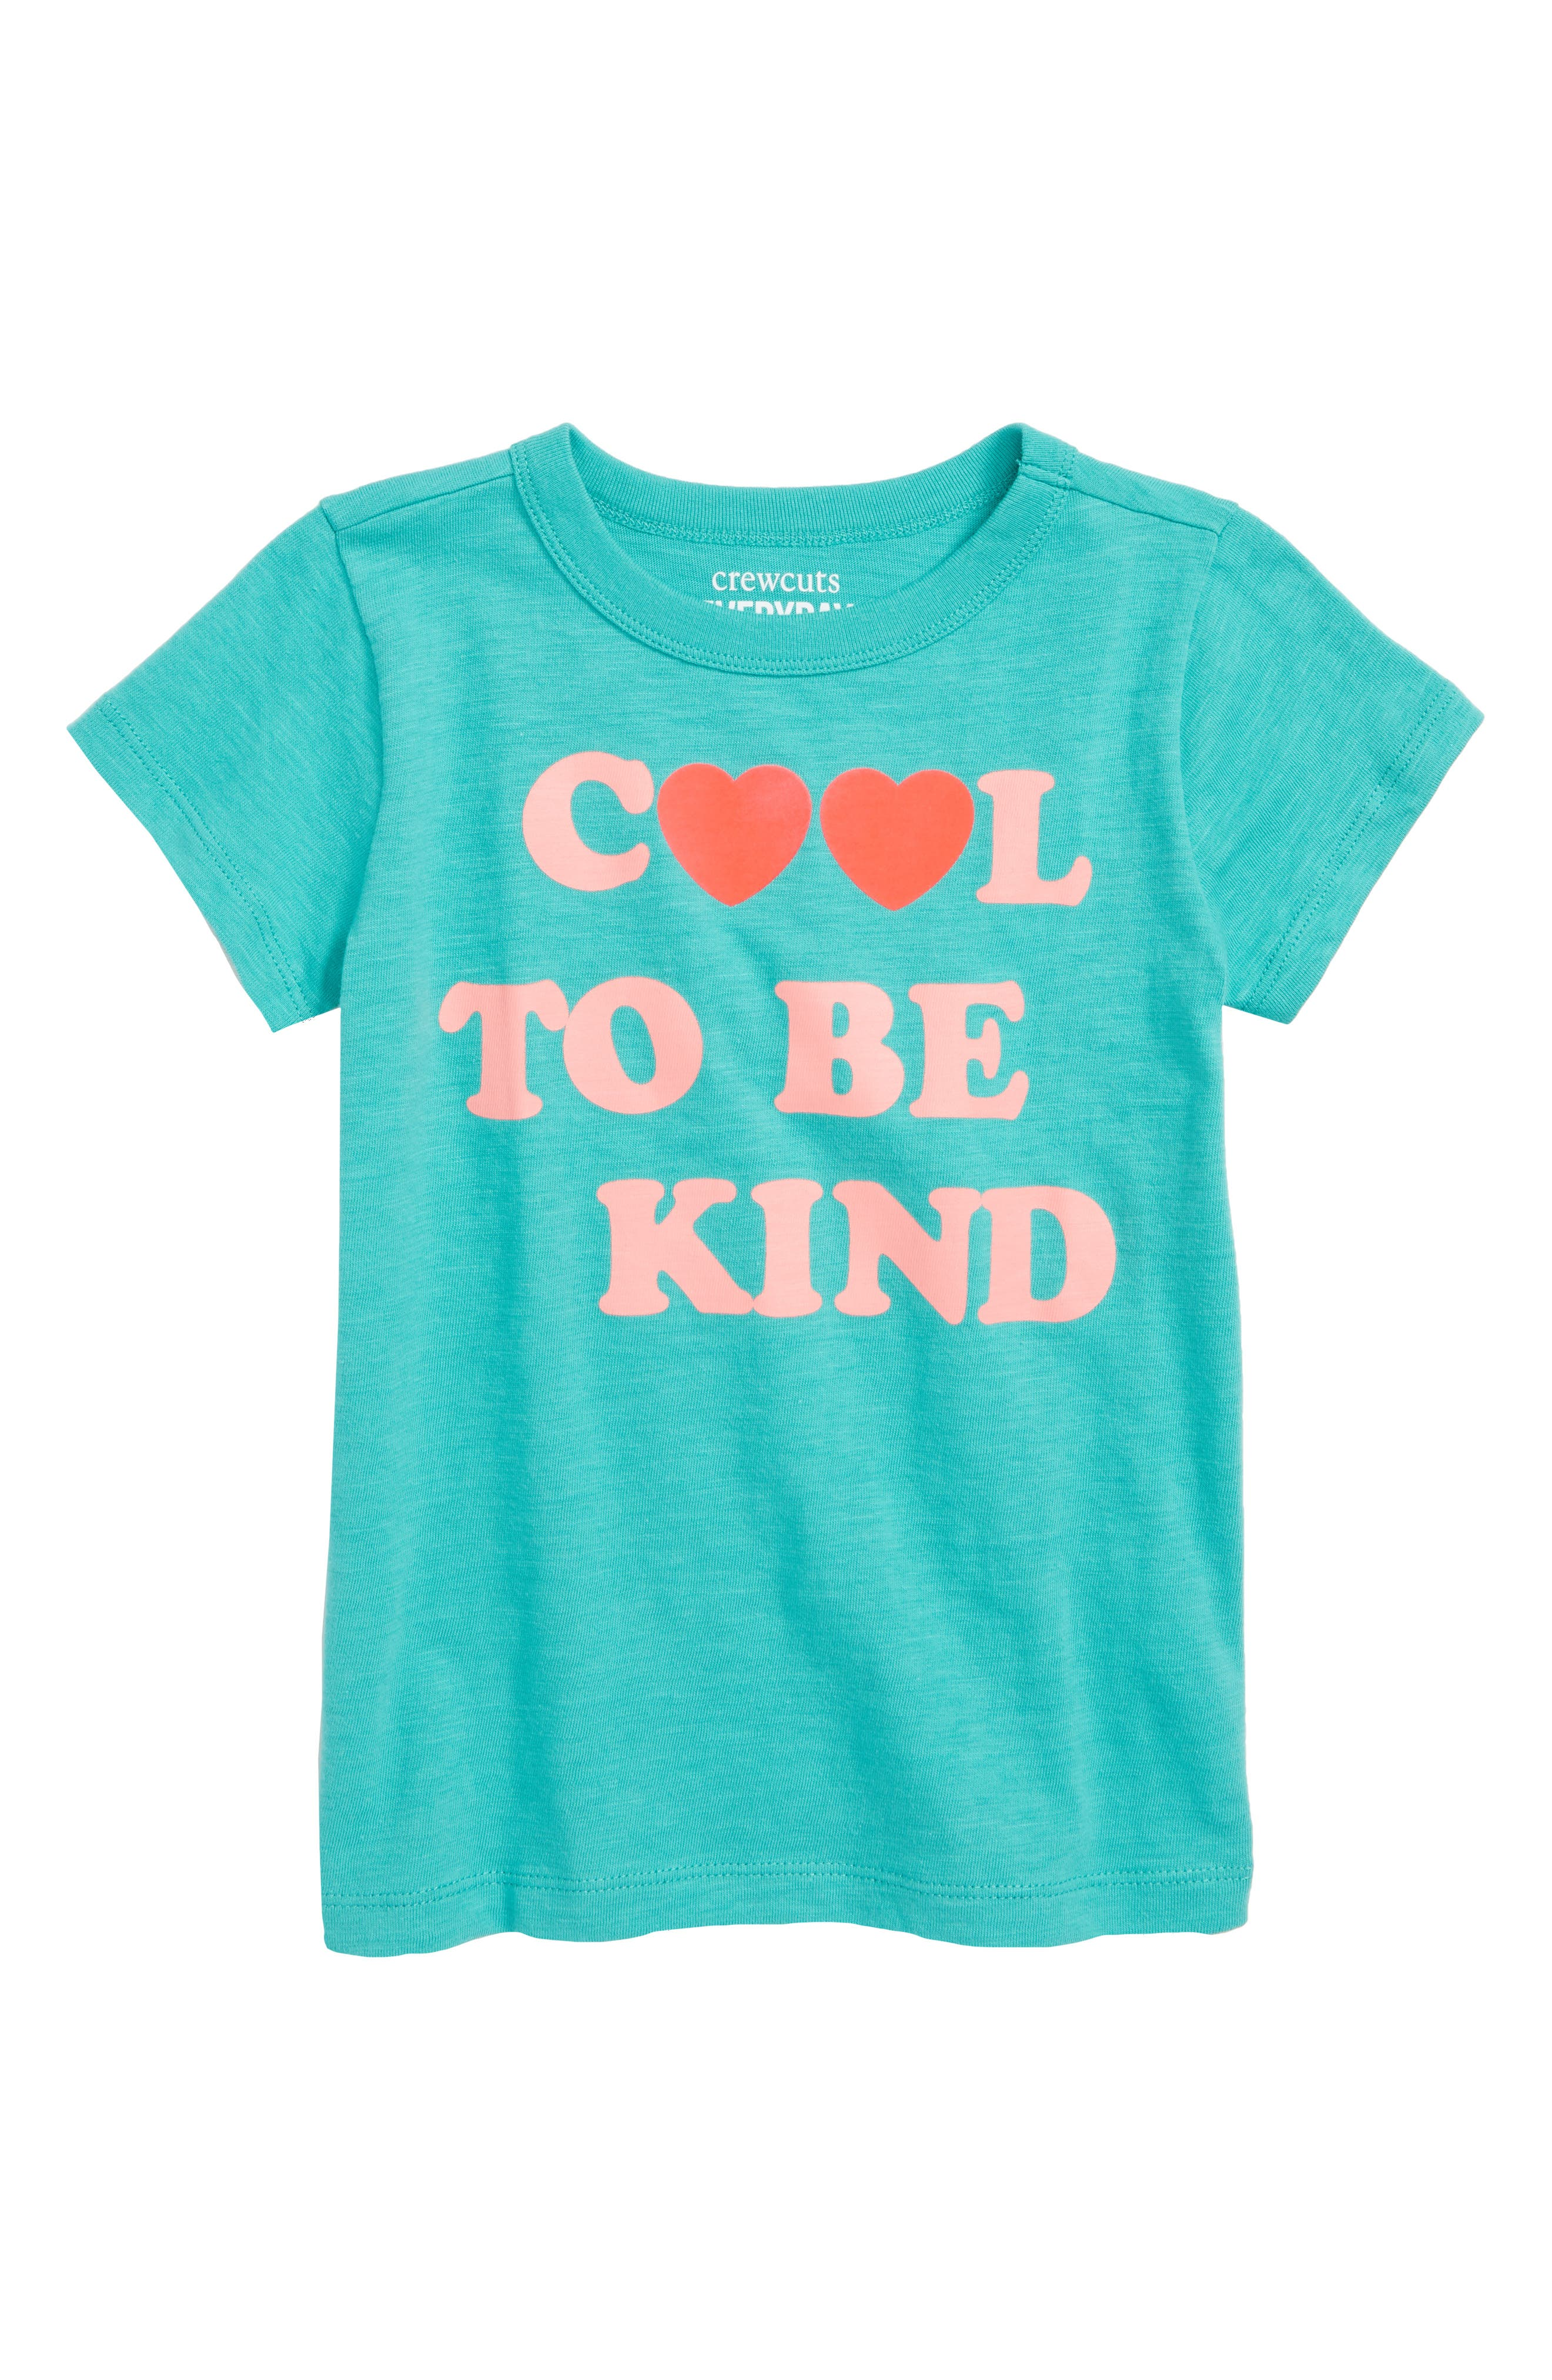 crewcuts by J. Crew Cool to Be Kind Graphic Tee,                             Main thumbnail 1, color,                             300